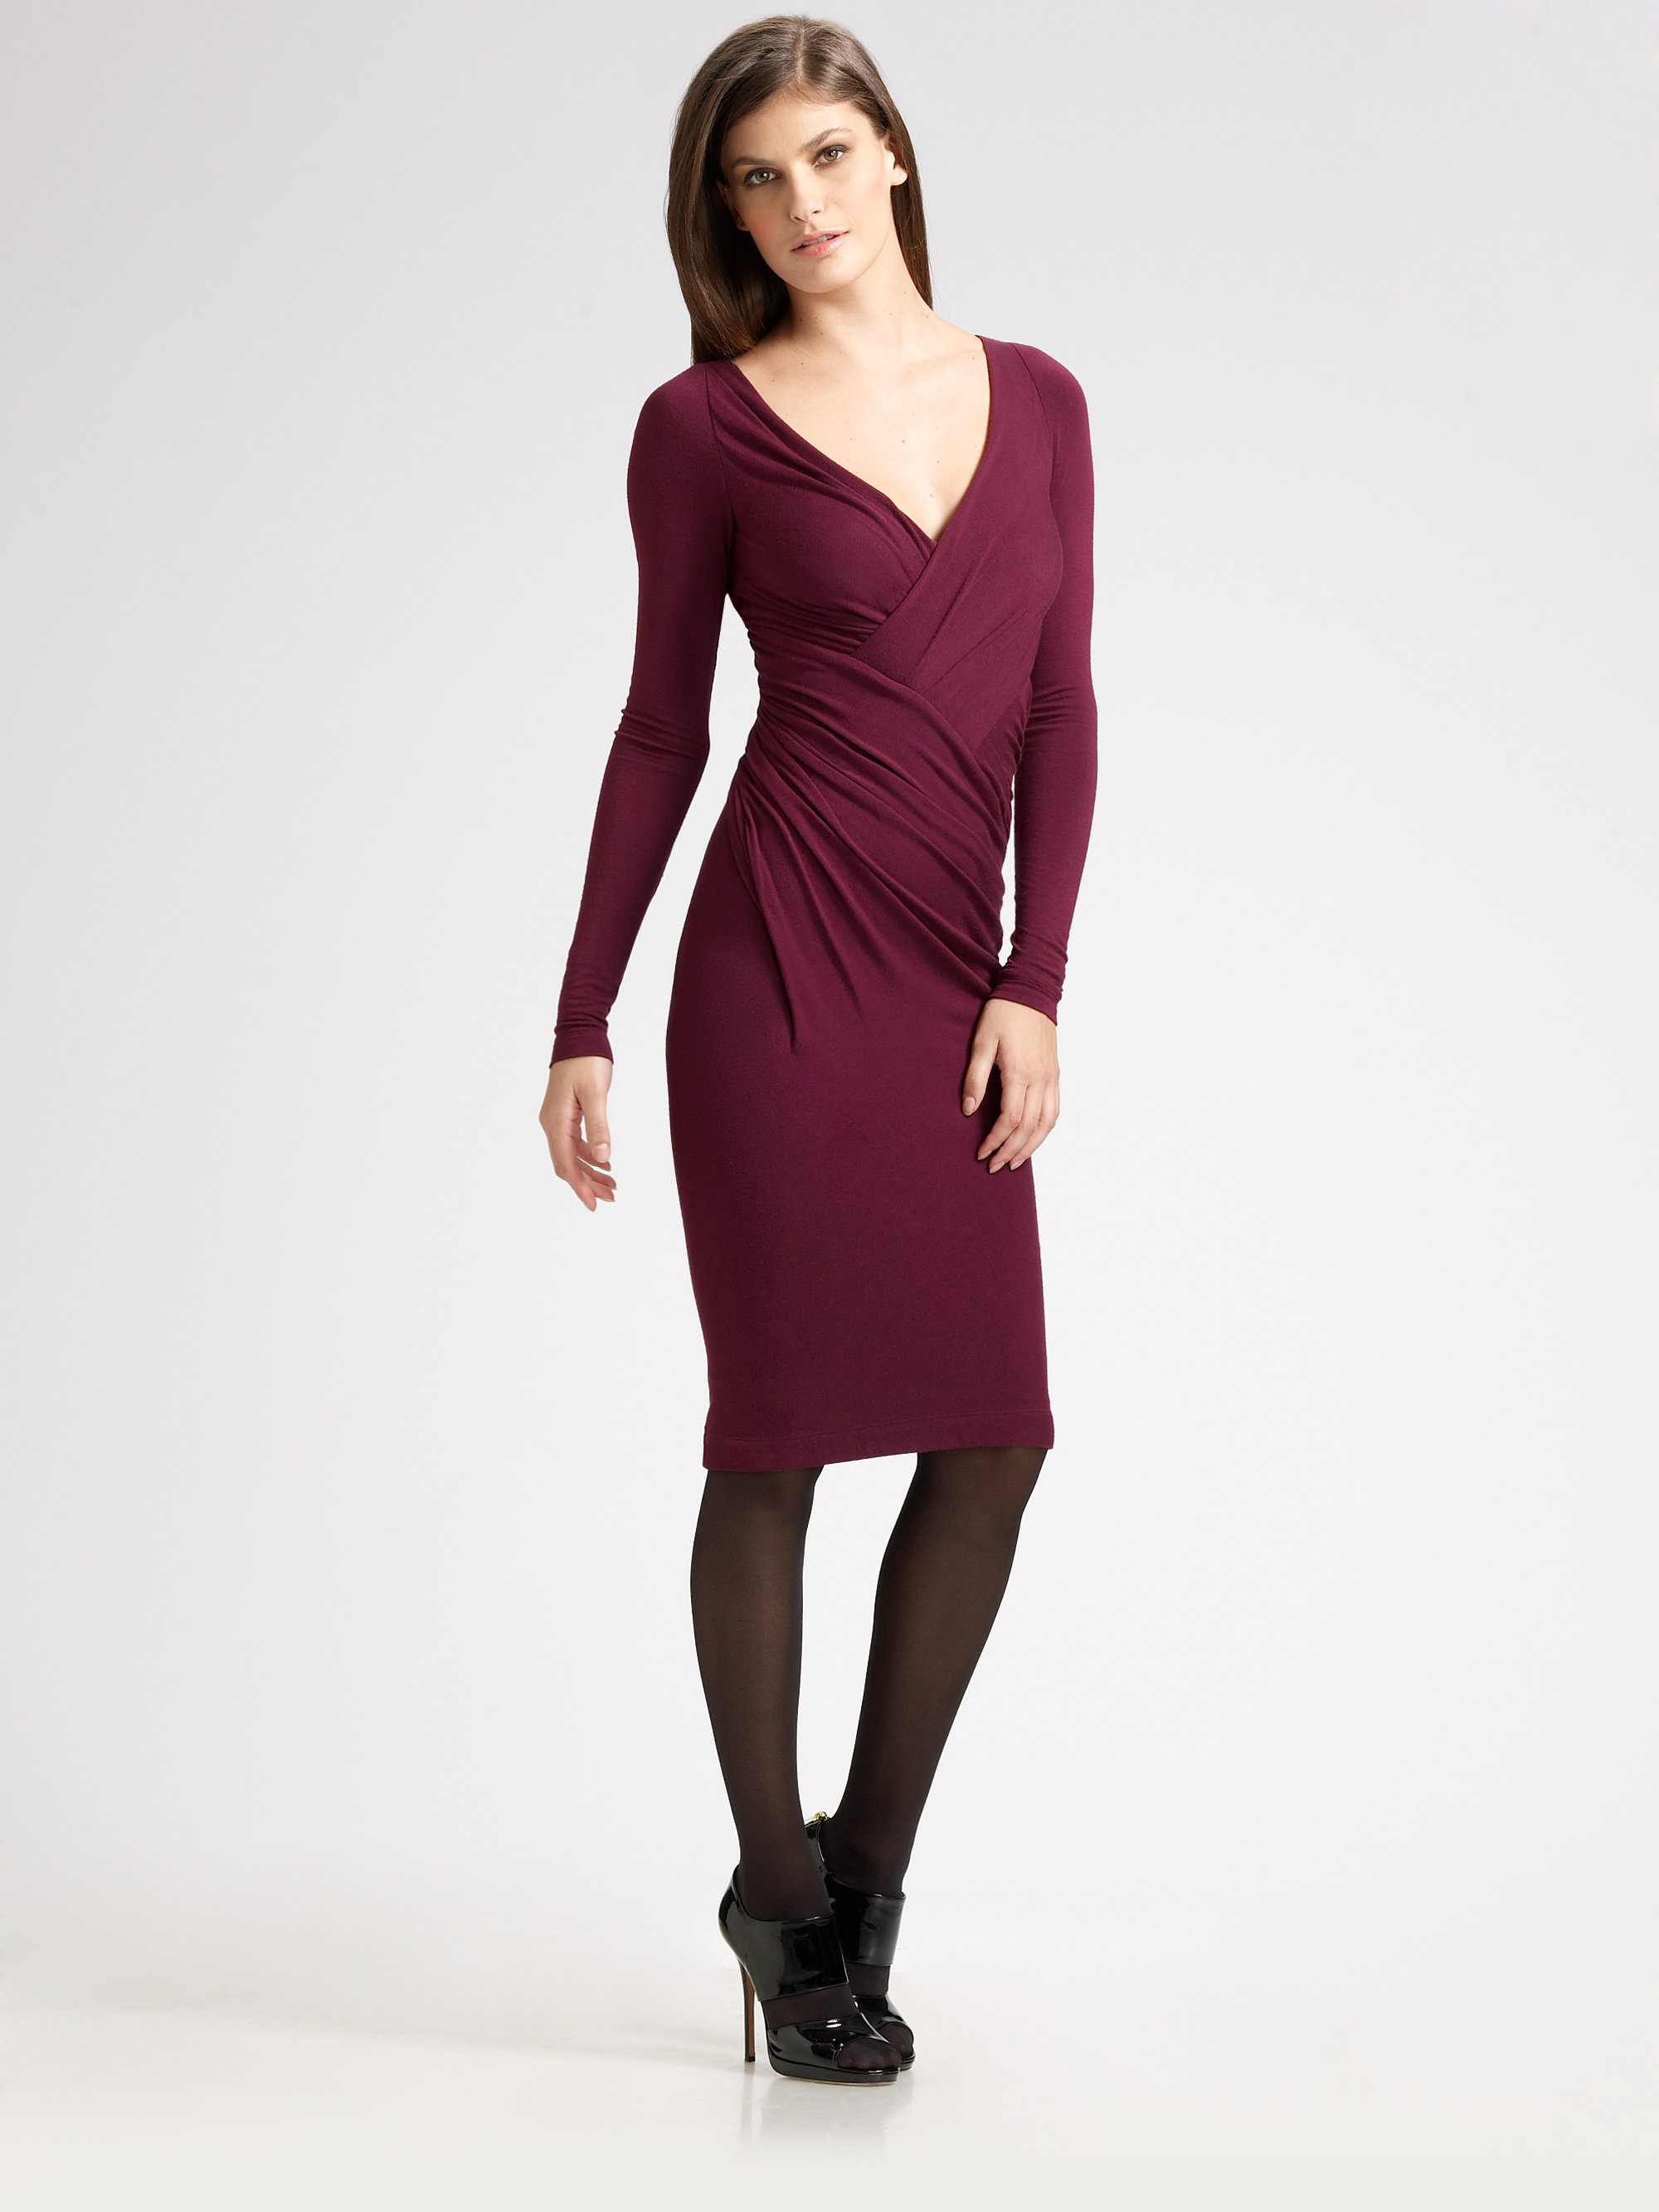 Donna karan new york jersey vneck dress in purple plum for Donna karen new york